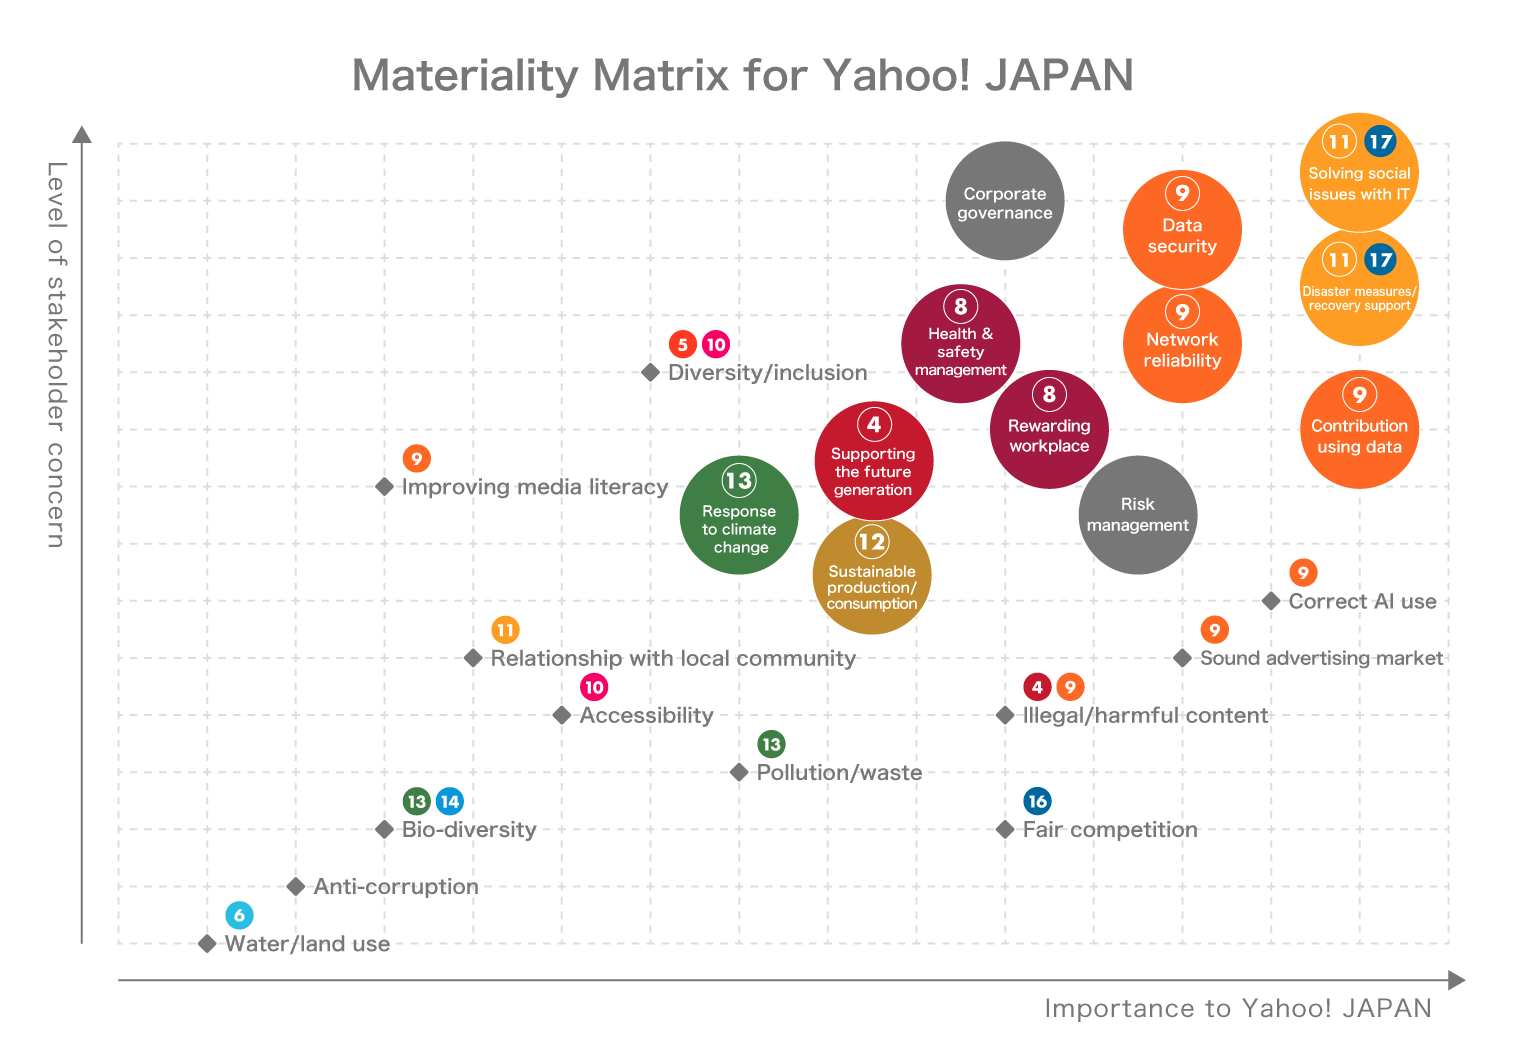 Yahoo! Japan materiality diagram.A very important item for both interested parties and Yahoo! Japan.We believe it is important to solve social problems with IT, support disaster recovery and recovery, contribute by utilizing data, and ensure data security and network reliability. In addition, health management and employee satisfaction, support for the next generation, sustainable production and consumption, and response to climate change are also important.